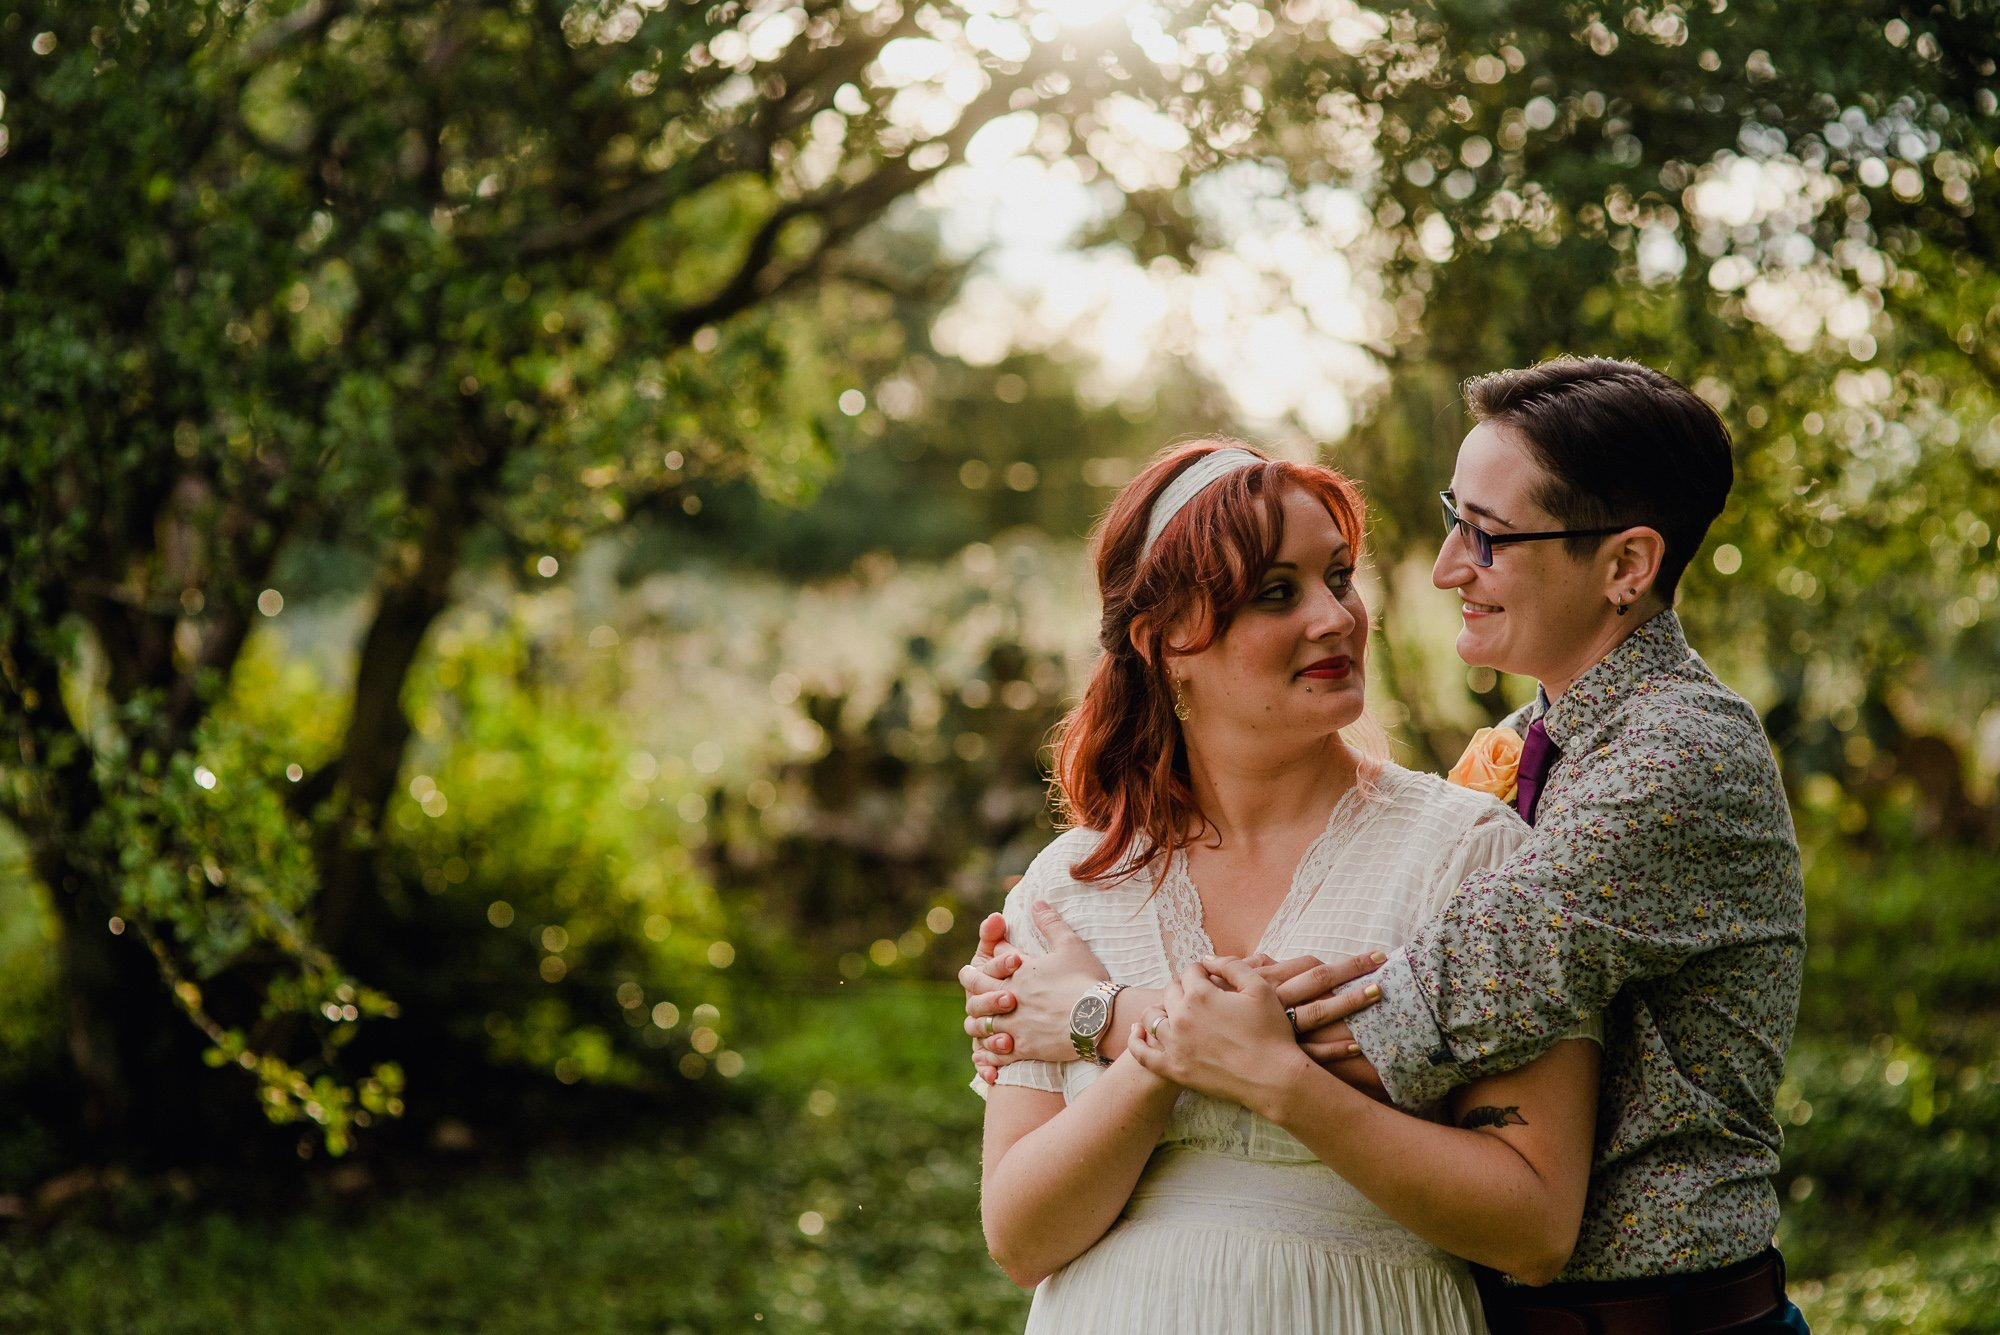 austin same sex wedding photographer, gay wedding photographers in texas, austin texas wedding photographer for creative and colorful couples, backyard wedding in austin texas